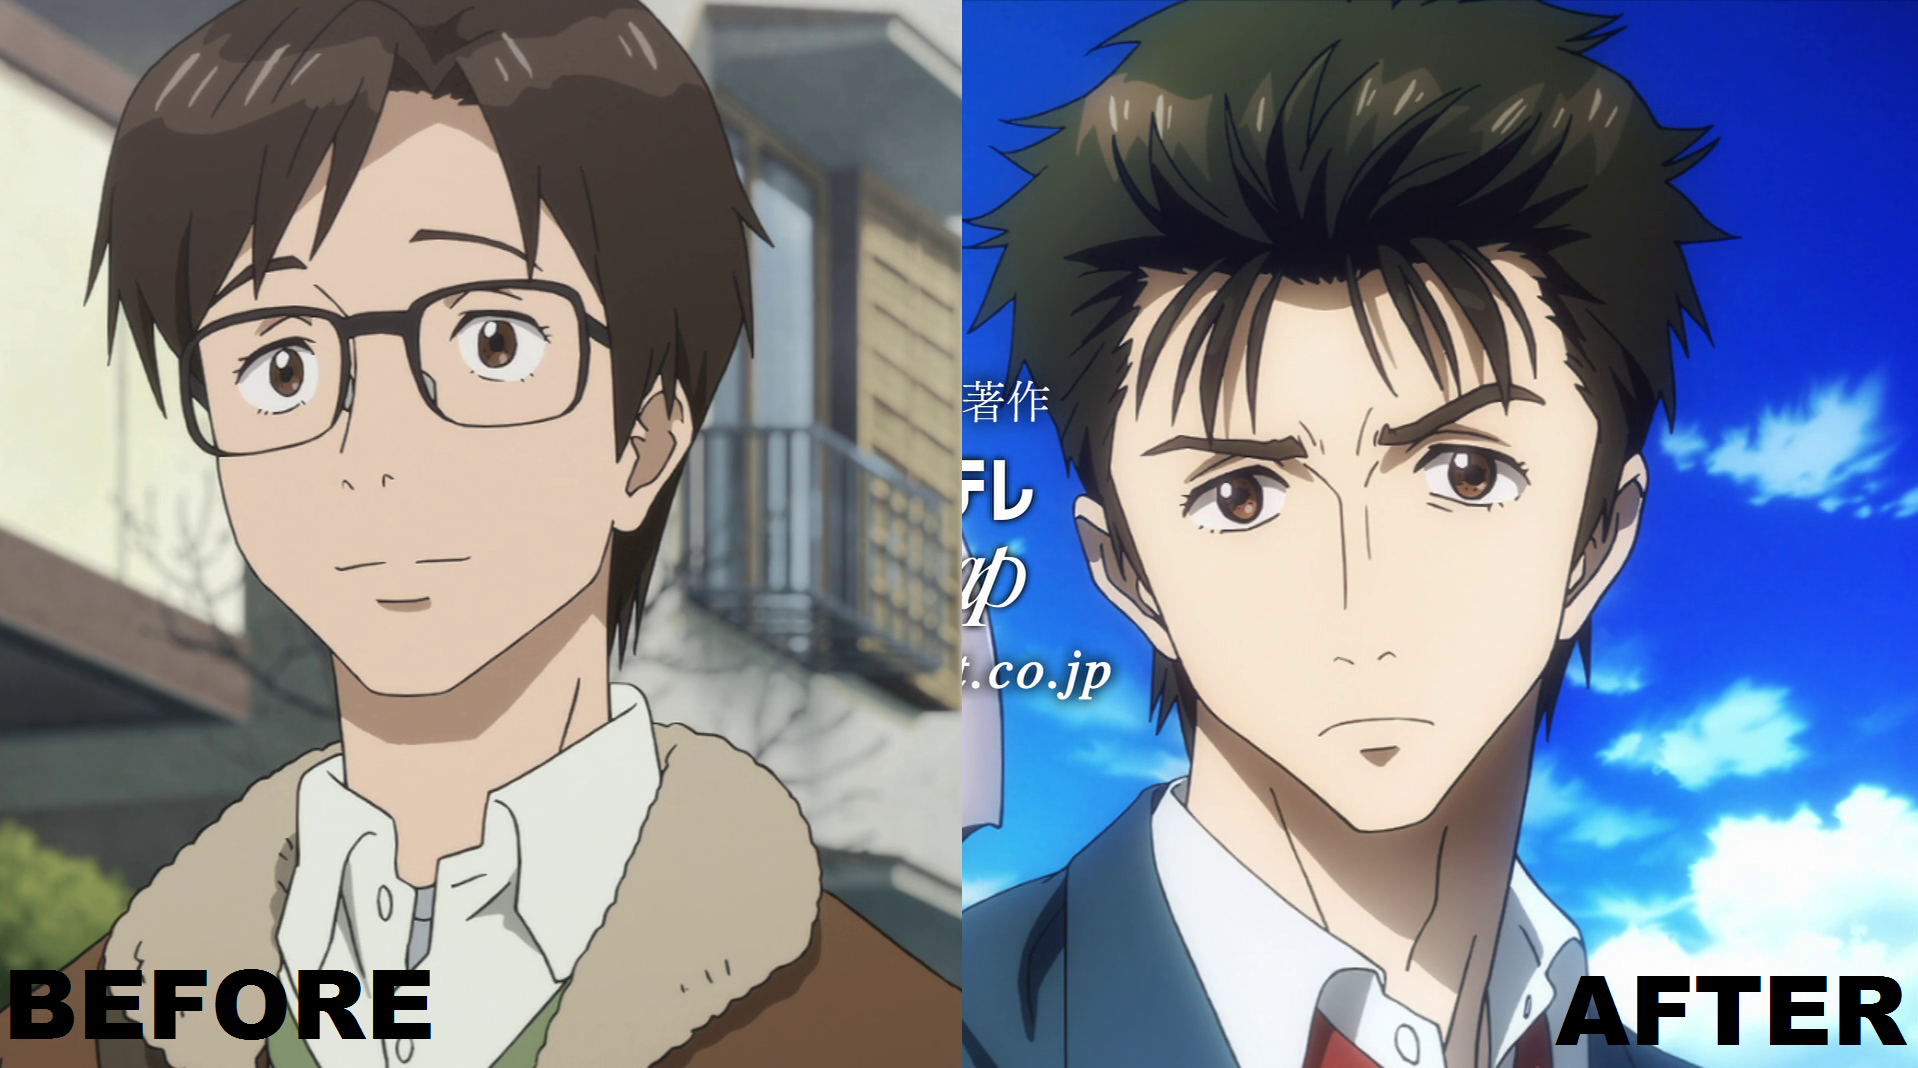 Kiseijuu: Sei no Kakuritsu (Parasite) Shinichi_Izumi_Anime_Before_After